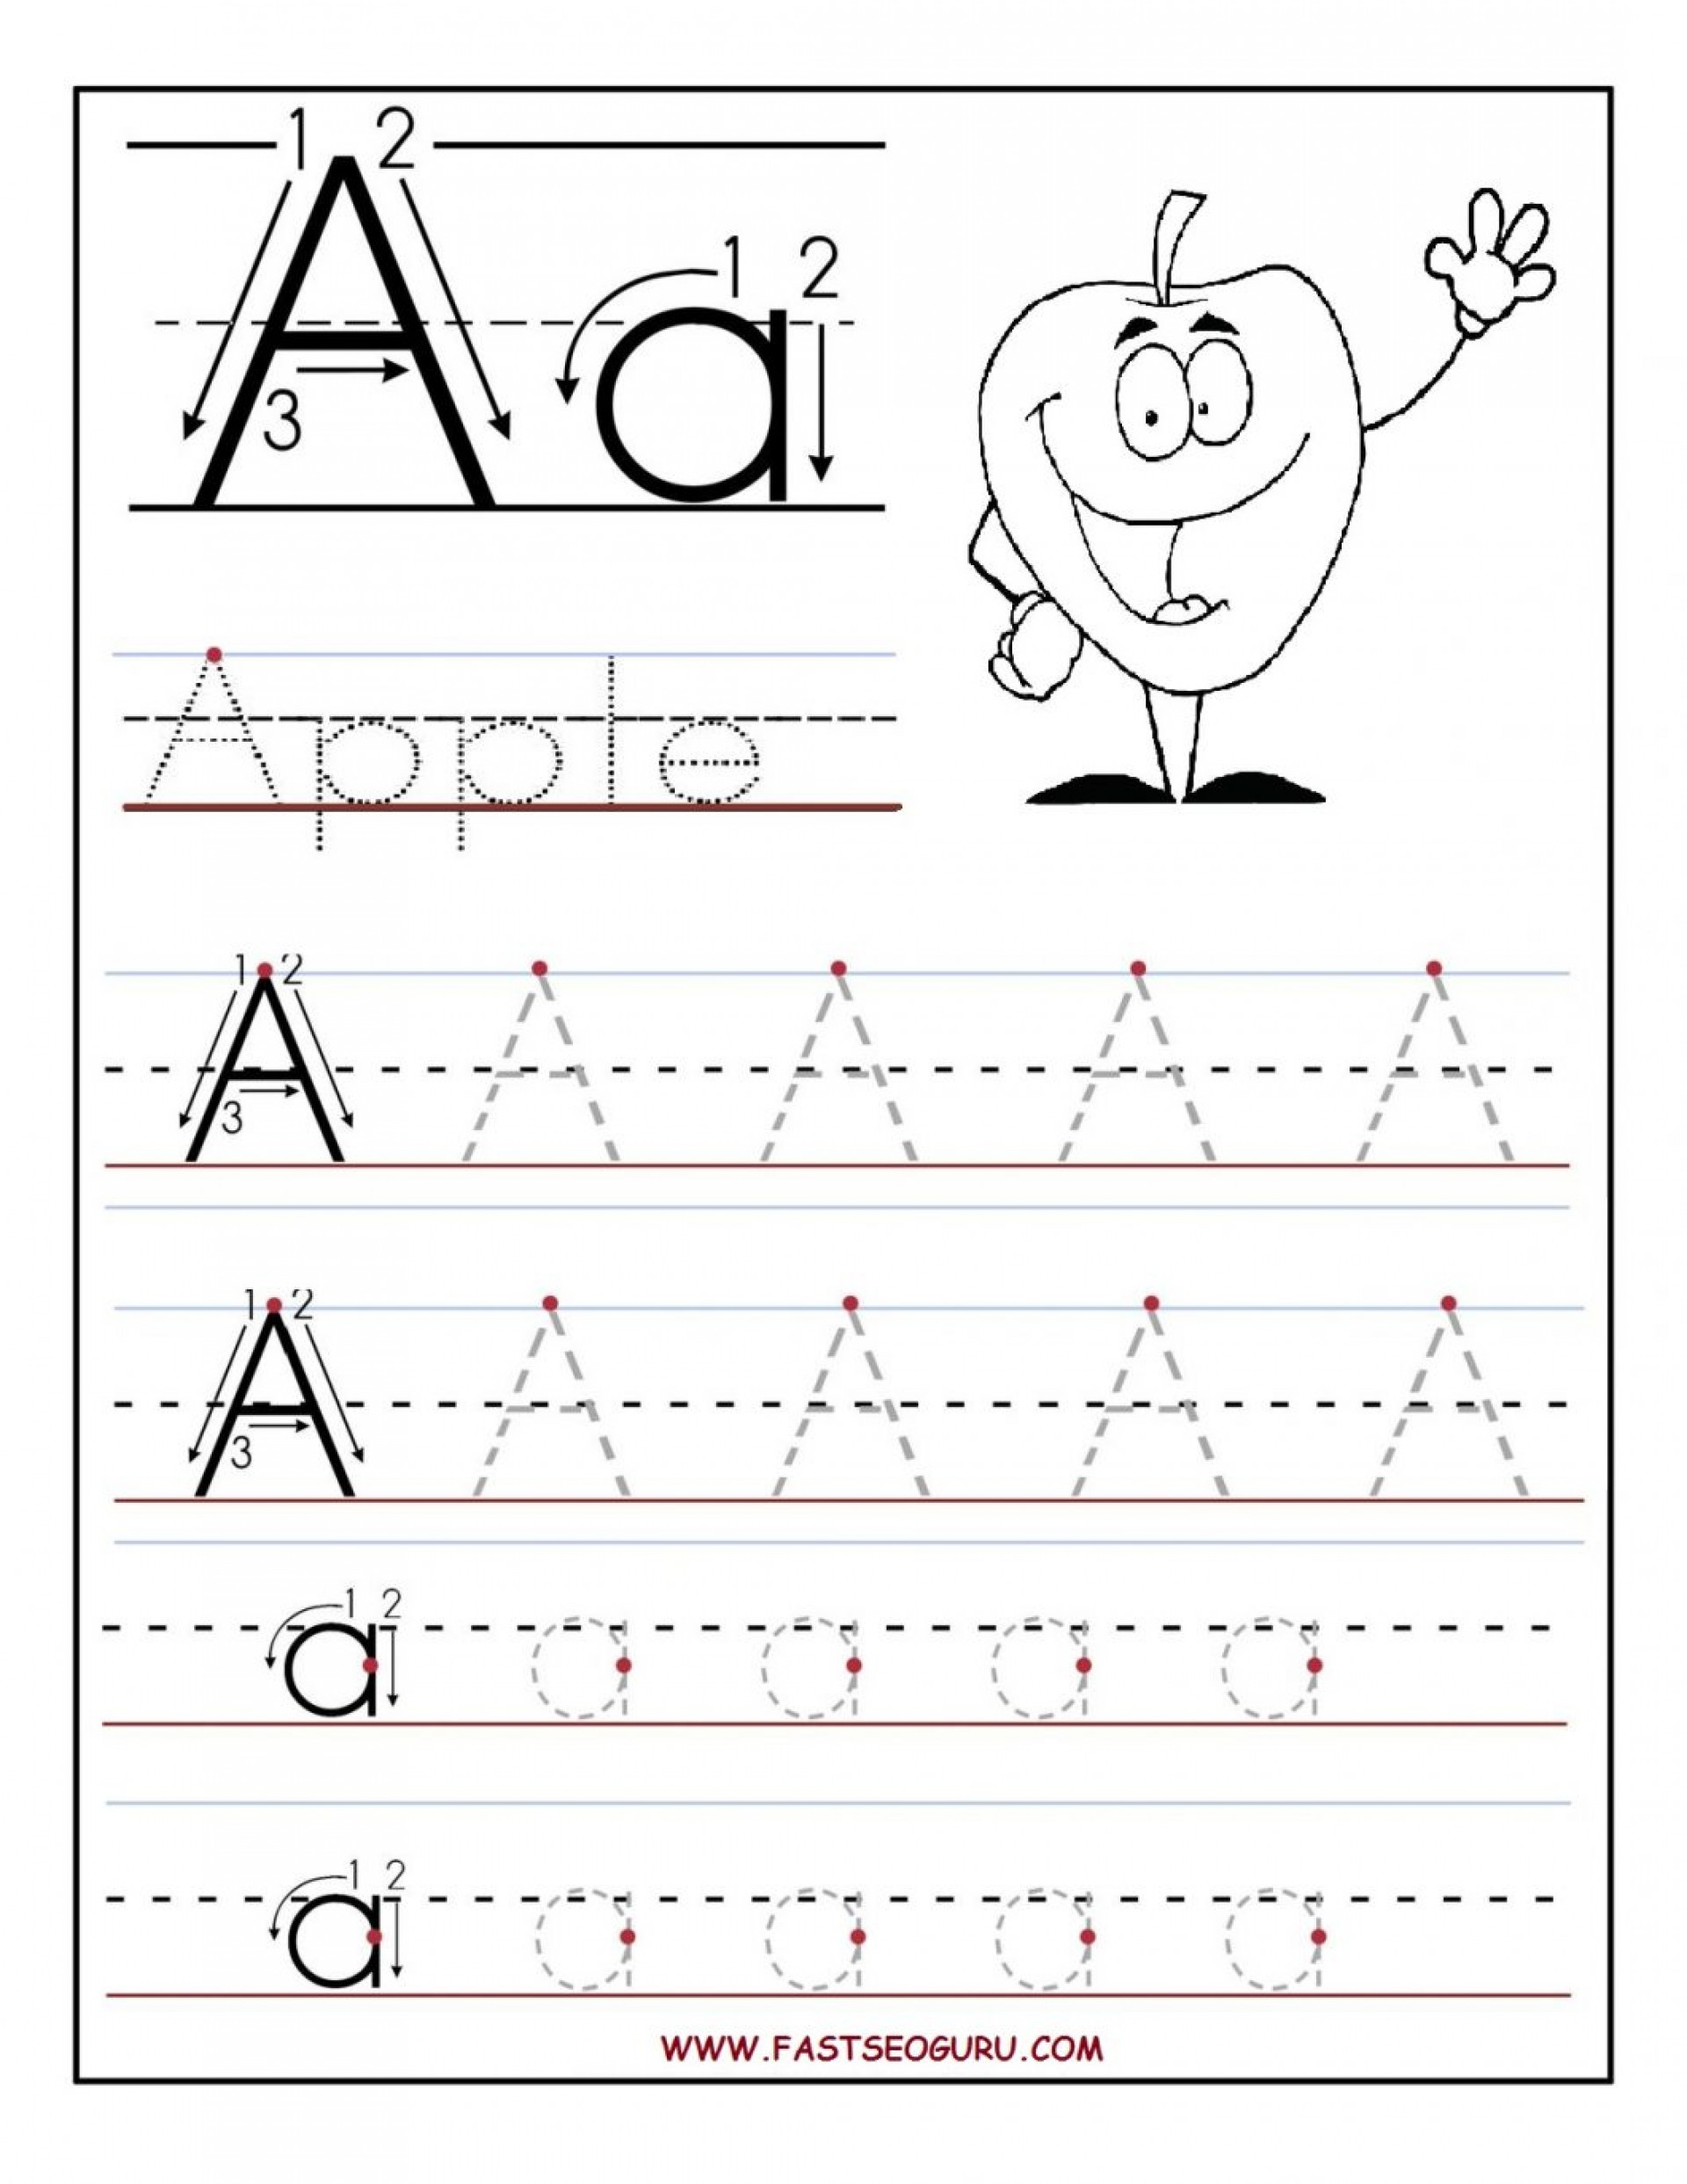 Coloring Book : Free Printable Tracingts For Kindergarten inside Tracing Letter A Worksheets For Kindergarten